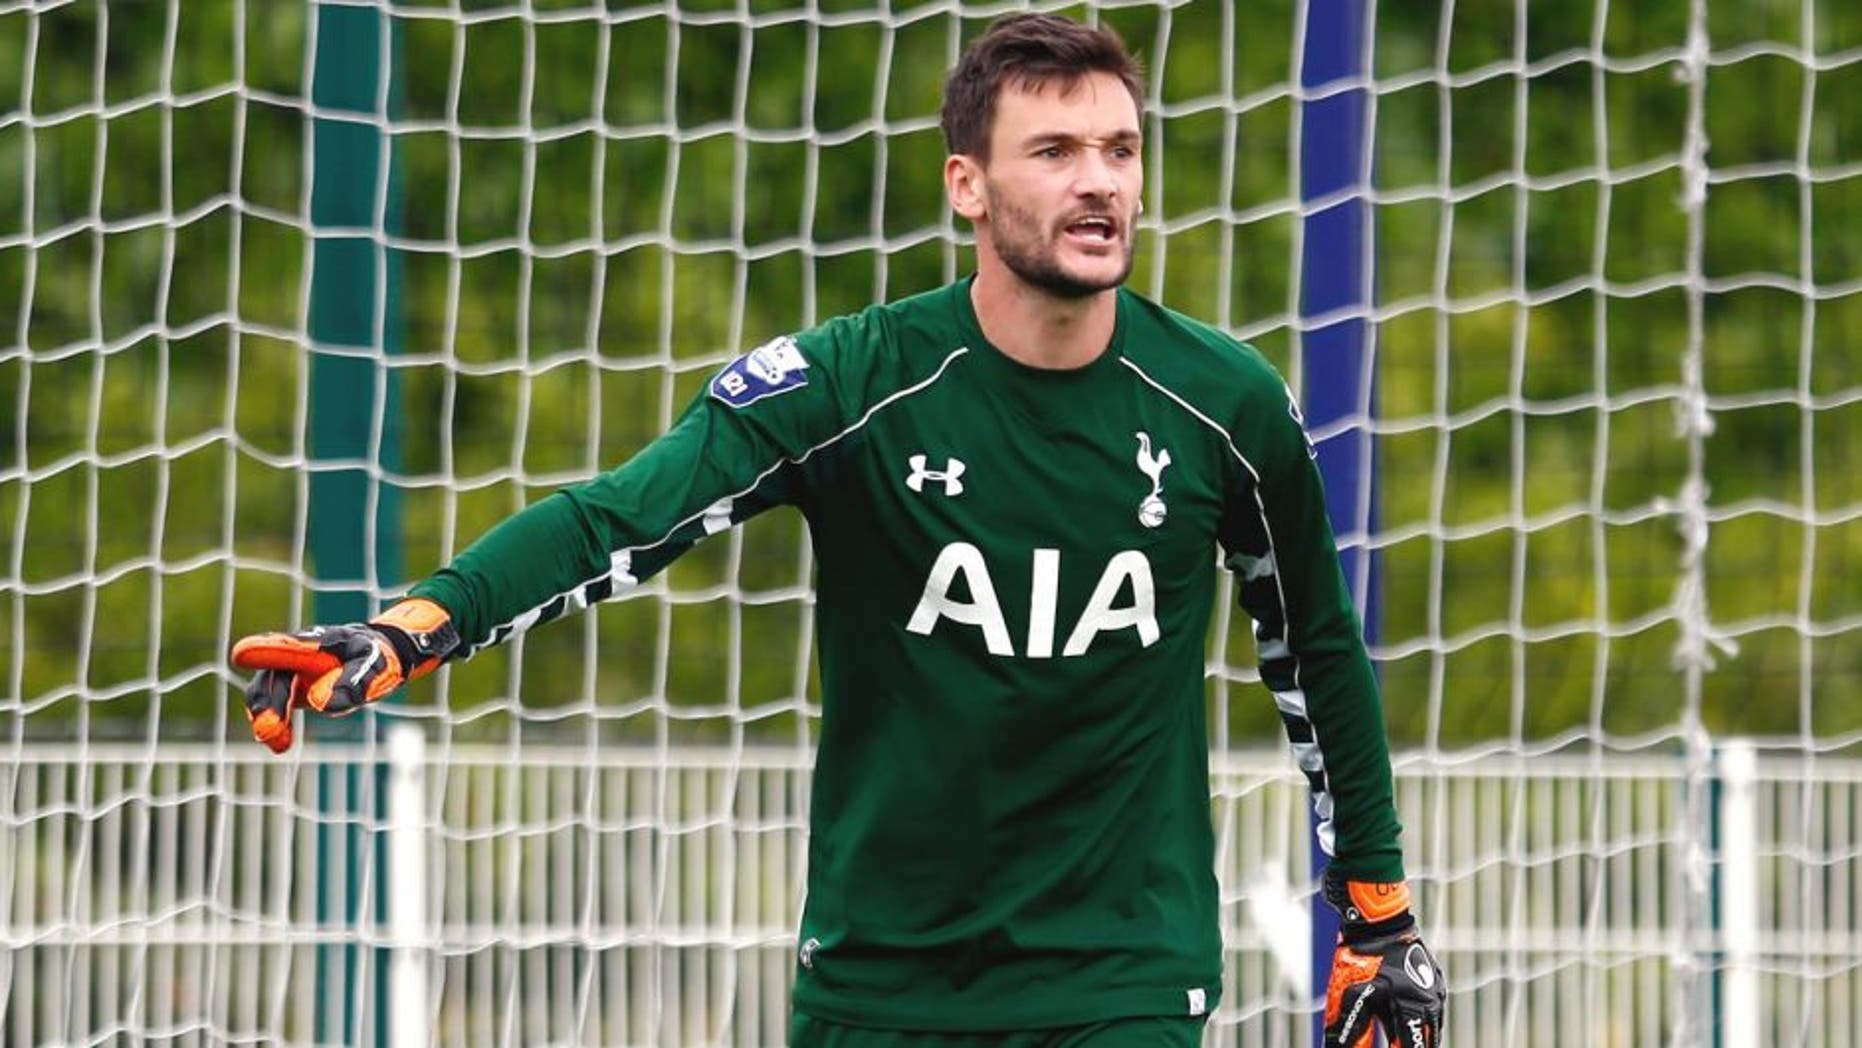 ENFIELD, ENGLAND - AUGUST 10: Goalkeeper Hugo Lloris of Spurs gives instructions during the Barclays U21 Premier League match between Tottenham Hotspur U21 and Everton U21 at Tottenham Hotspur Training Ground on August 10, 2015 in Enfield, England. (Photo by Julian Finney/Getty Images)